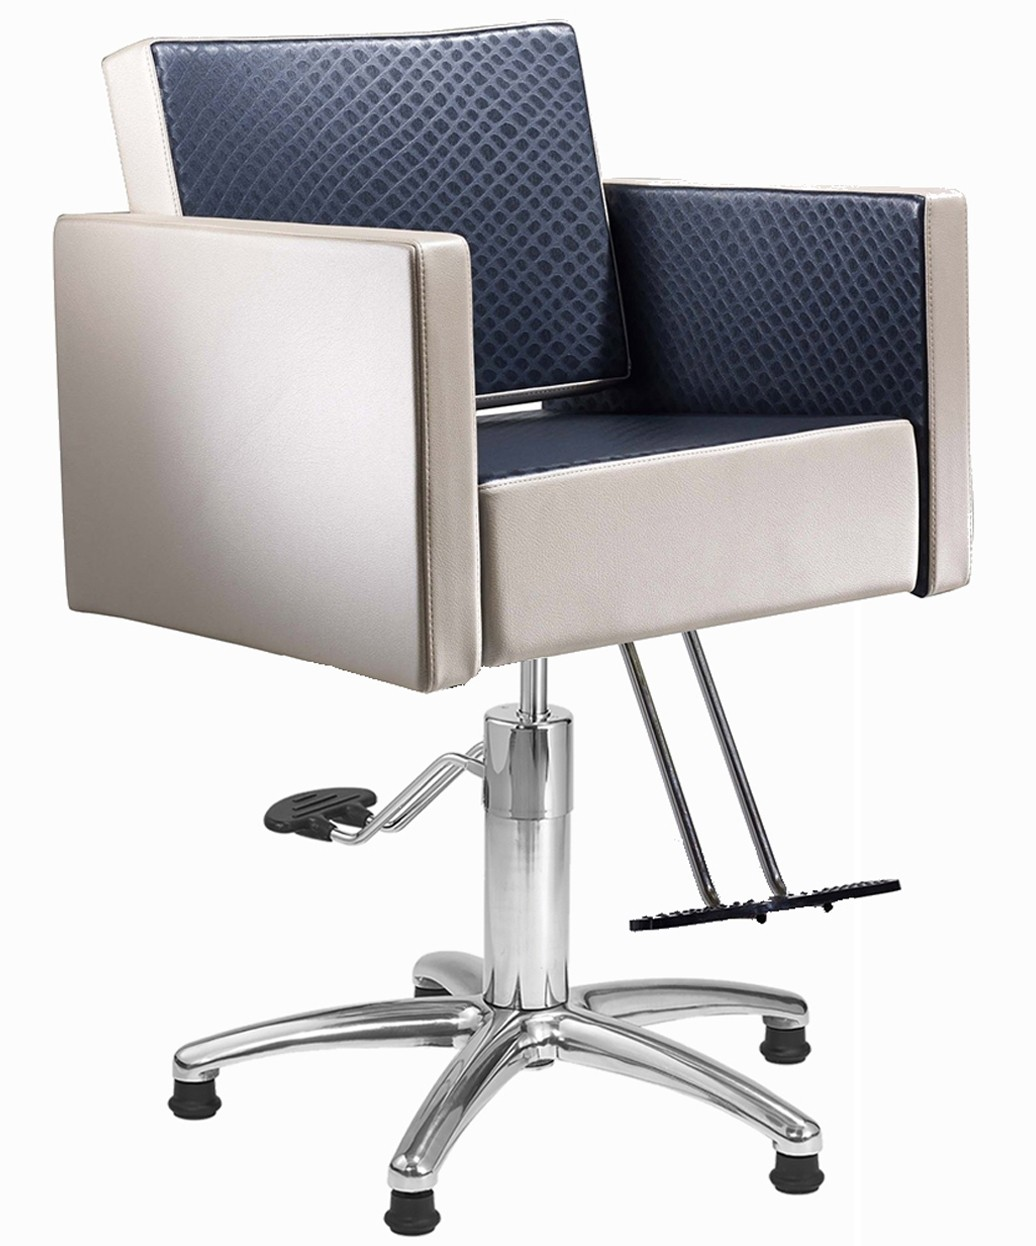 Salon Ambience SH-890 Square Styling Chair